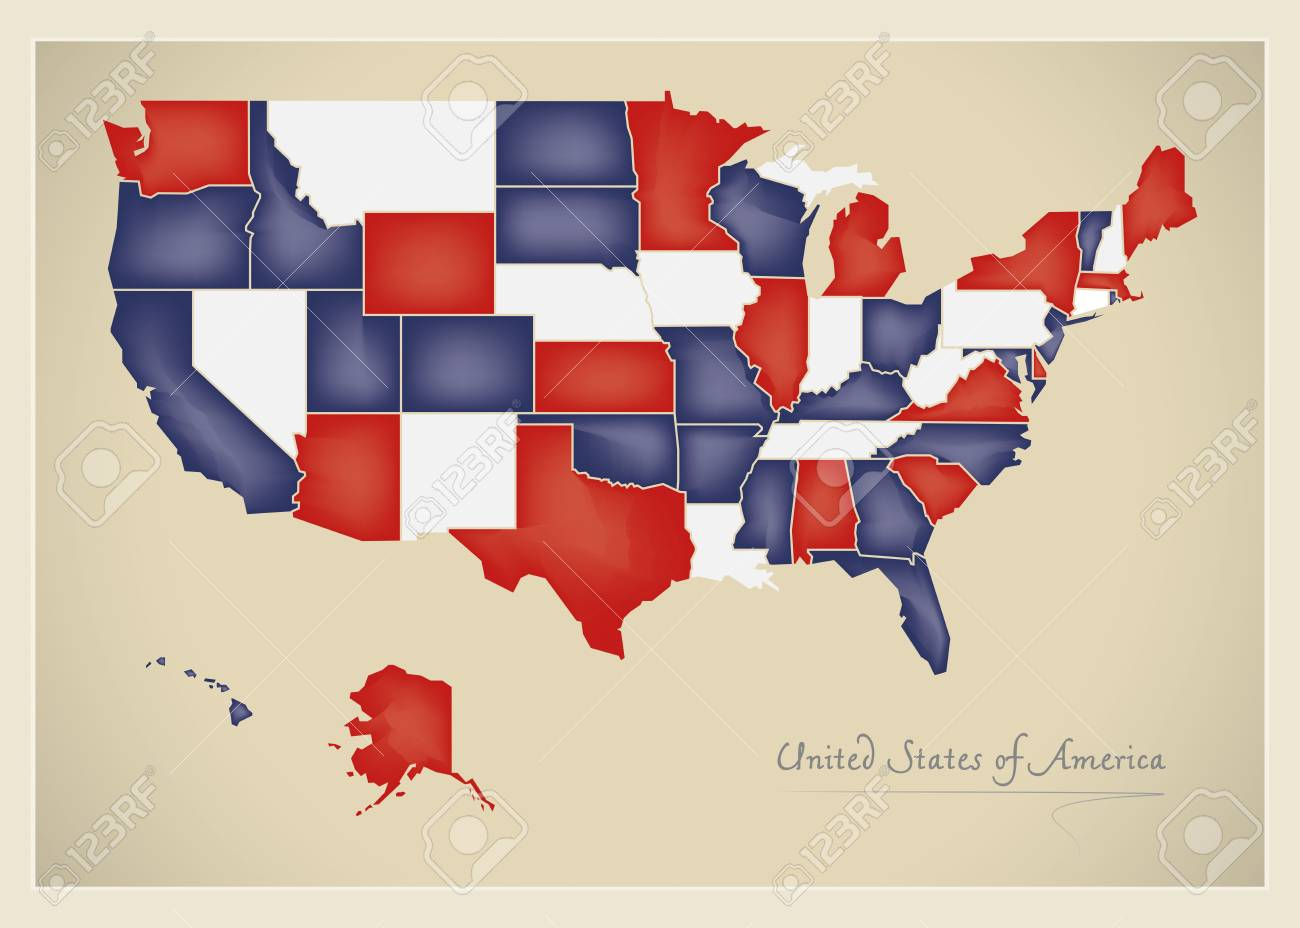 Us Map Artwork.Usa Map Artwork With National Flag Colors Illustration Stock Photo